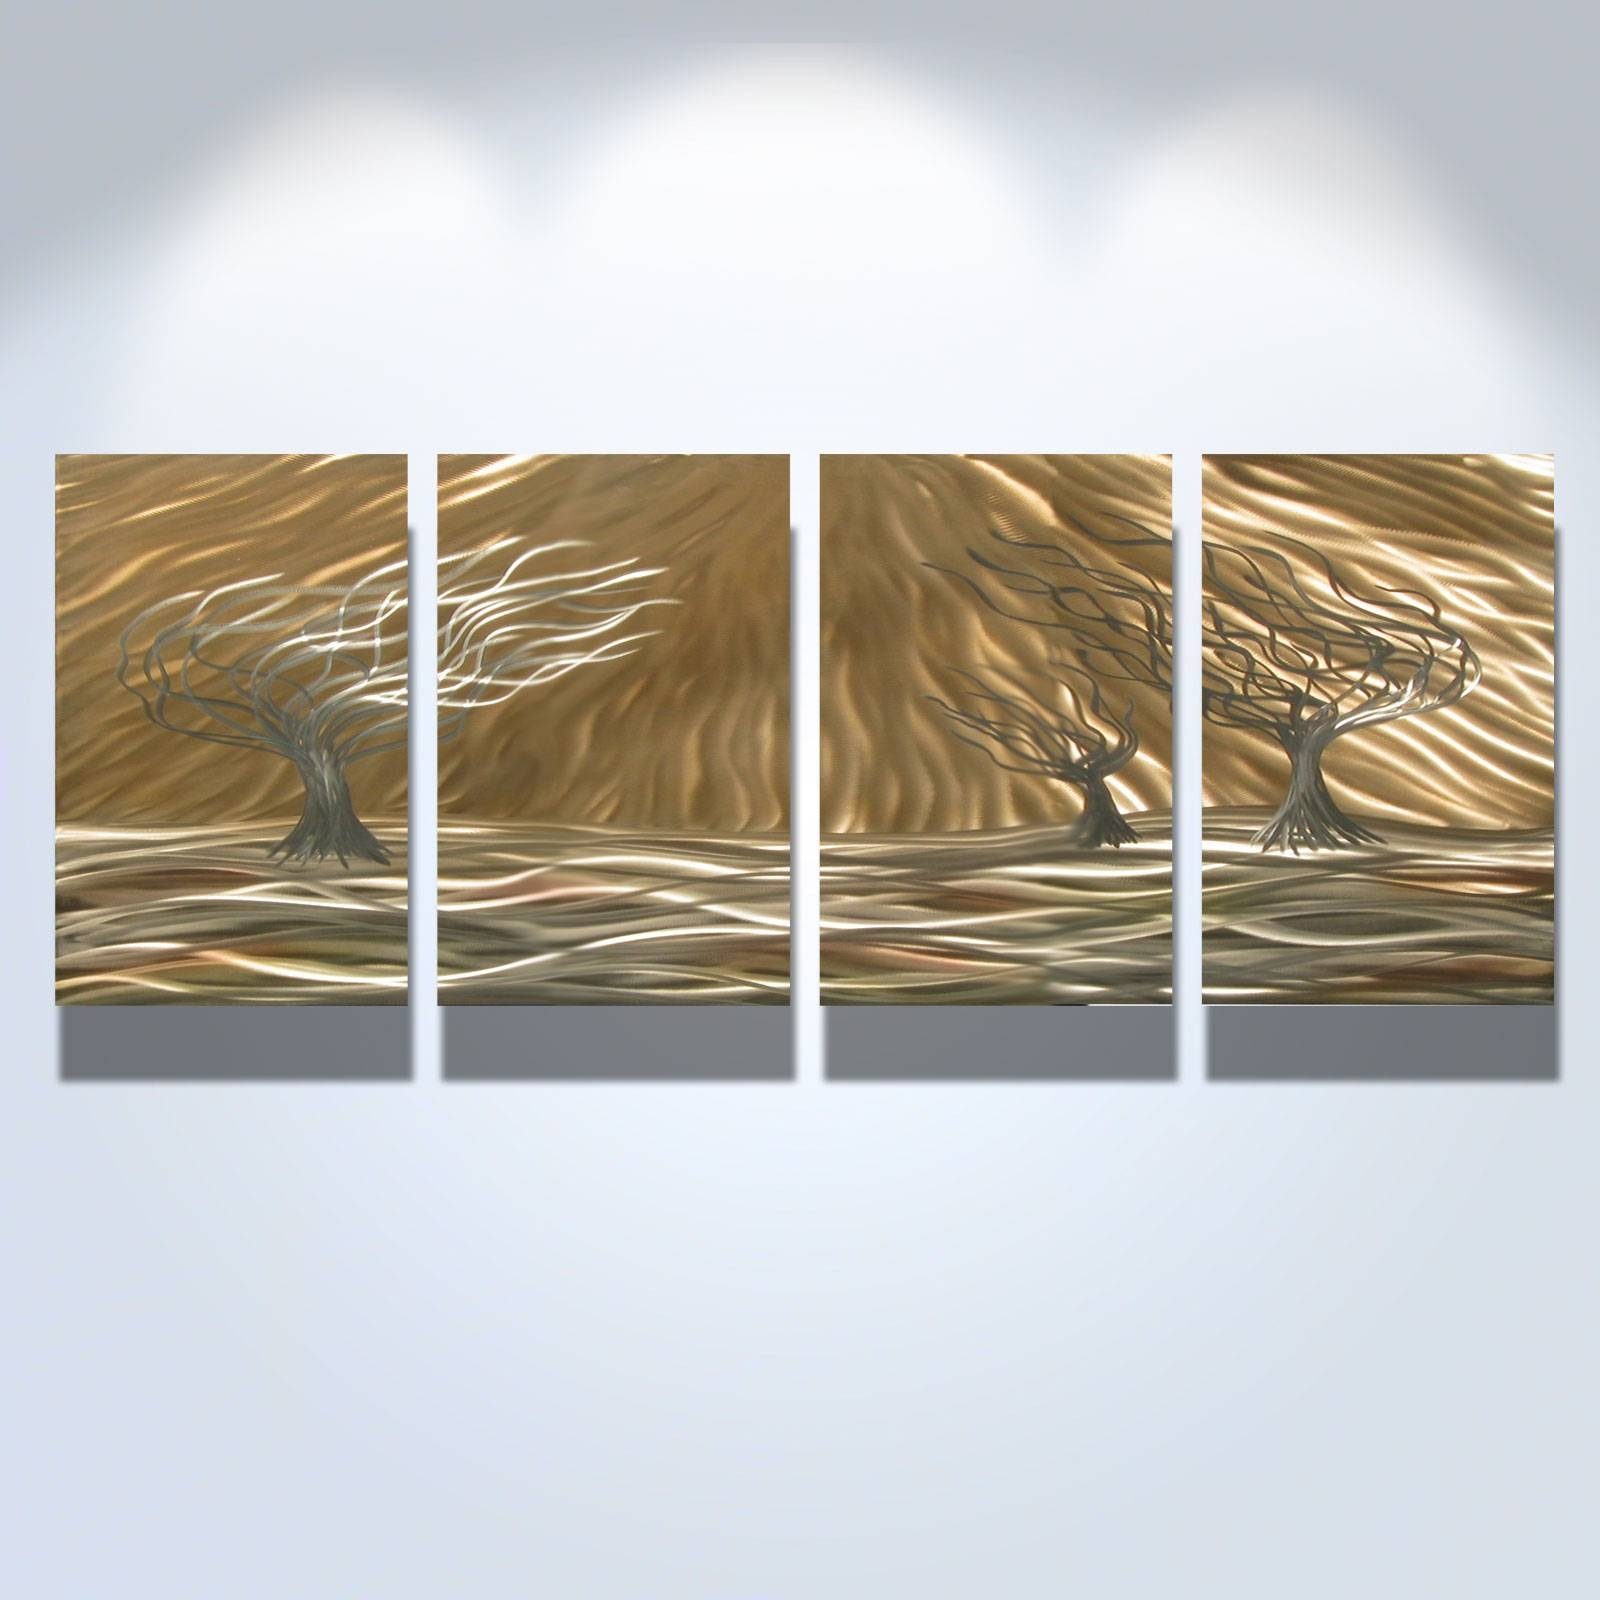 3 Trees 4 Panel – Abstract Metal Wall Art Contemporary Modern Regarding Recent Large Abstract Metal Wall Art (View 20 of 20)